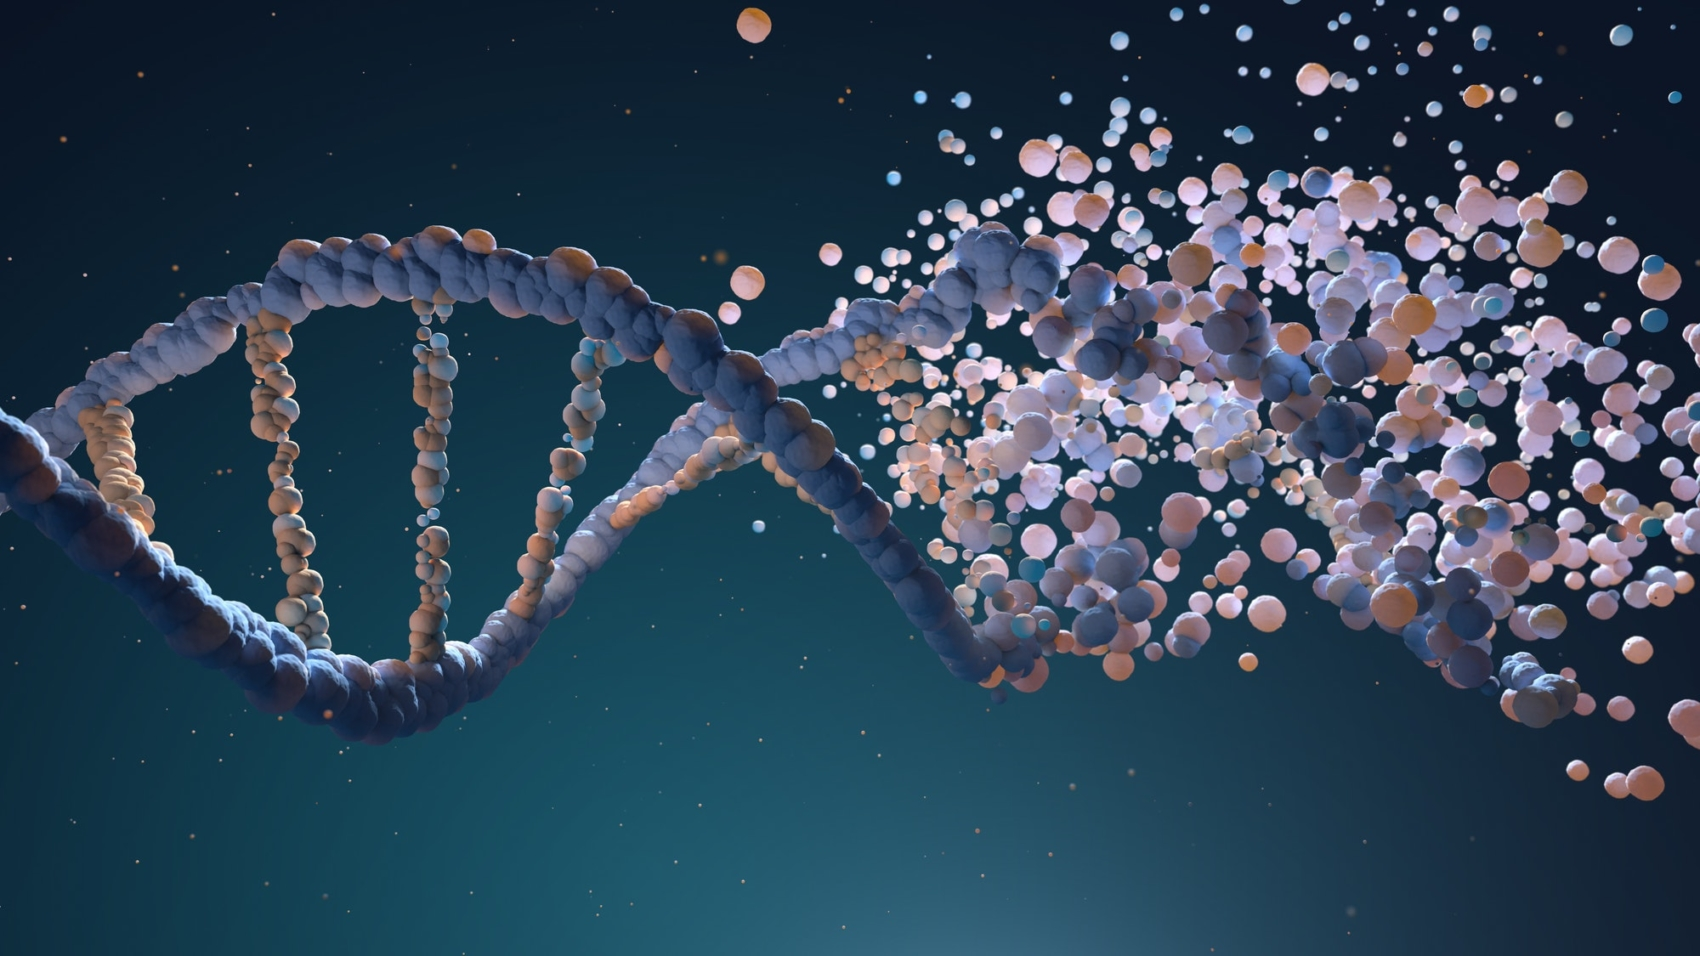 DNA strand assembling from different elements. By iLexx.